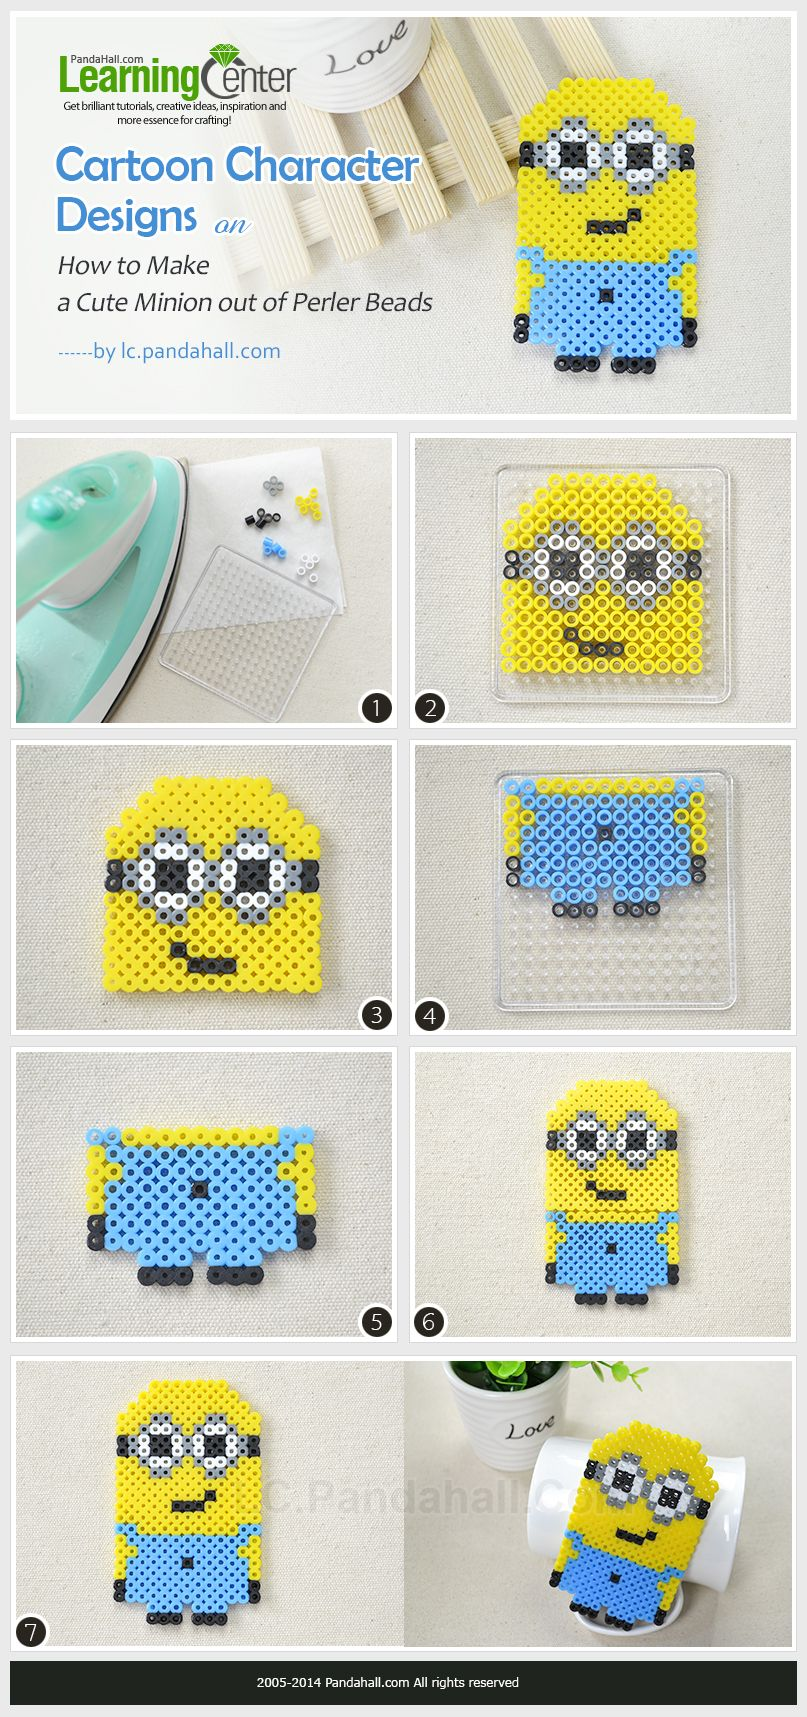 Cartoon Character Designs on How to Make a Cute Minion out of Perler ...